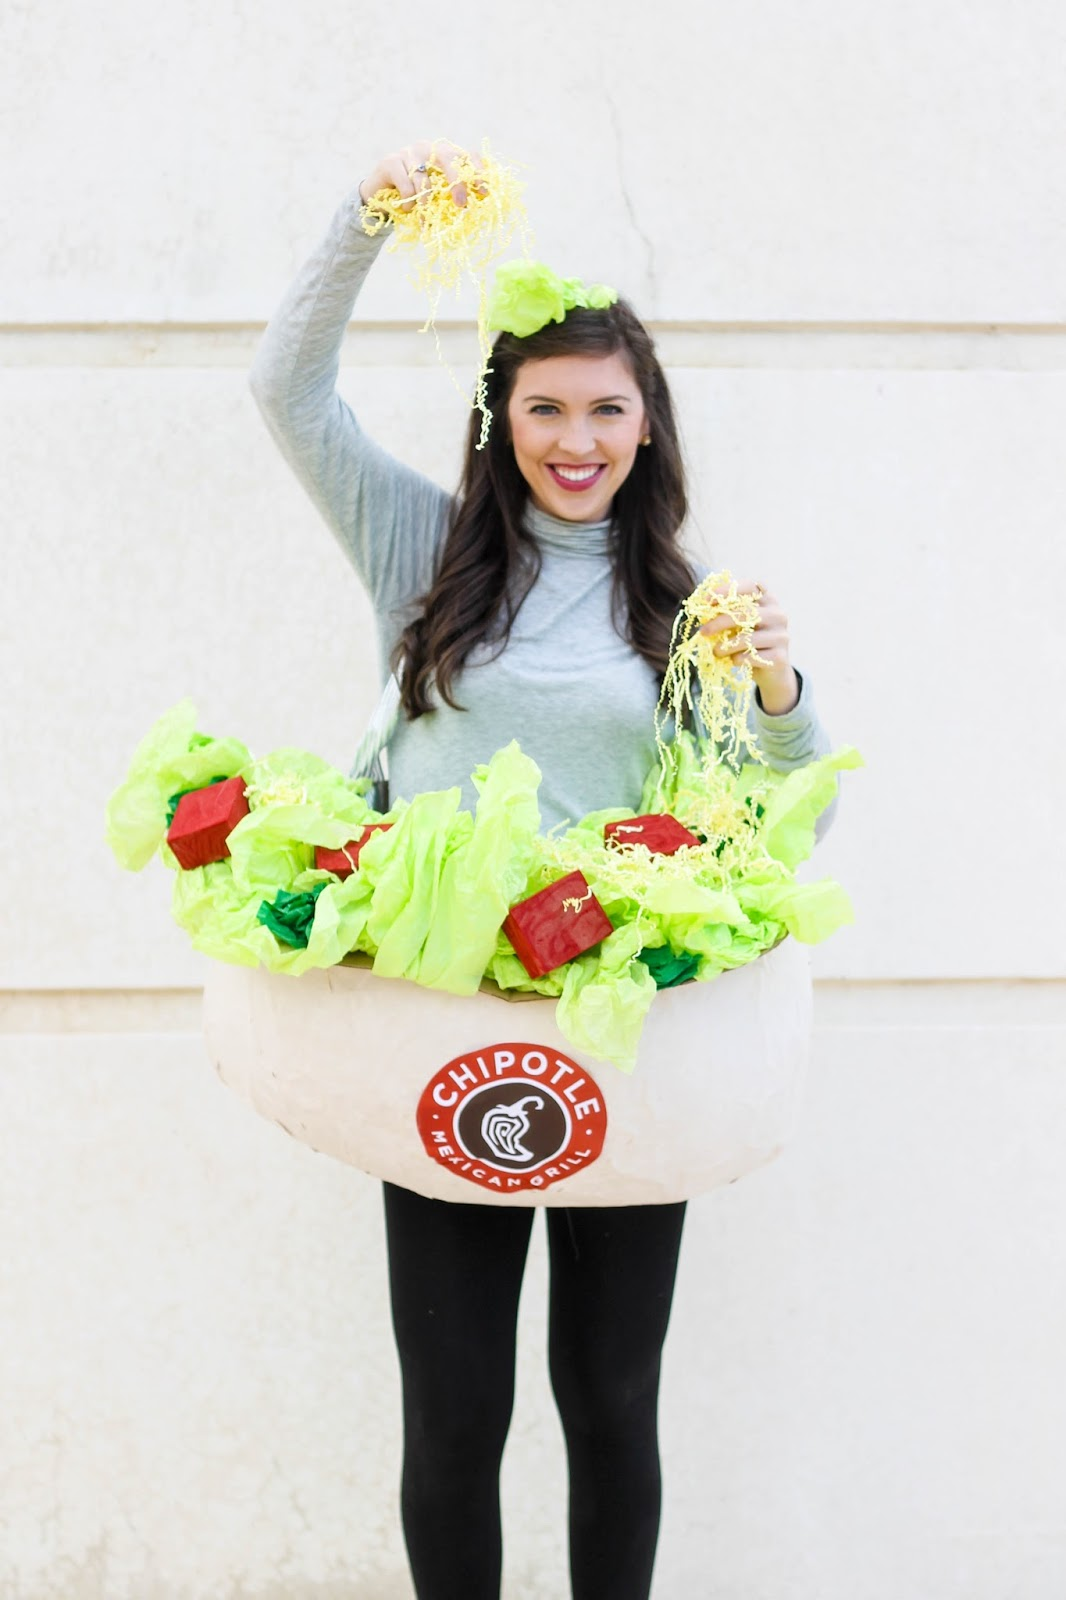 Chipotle Halloween costume, Chipotle bowl costume, Chipotle burrito costume, Halloween Costume Idea, Best Halloween Costume, Best DIY Halloween Costume, Creative Halloween Costume, Pretty in the Pines Halloween Costume